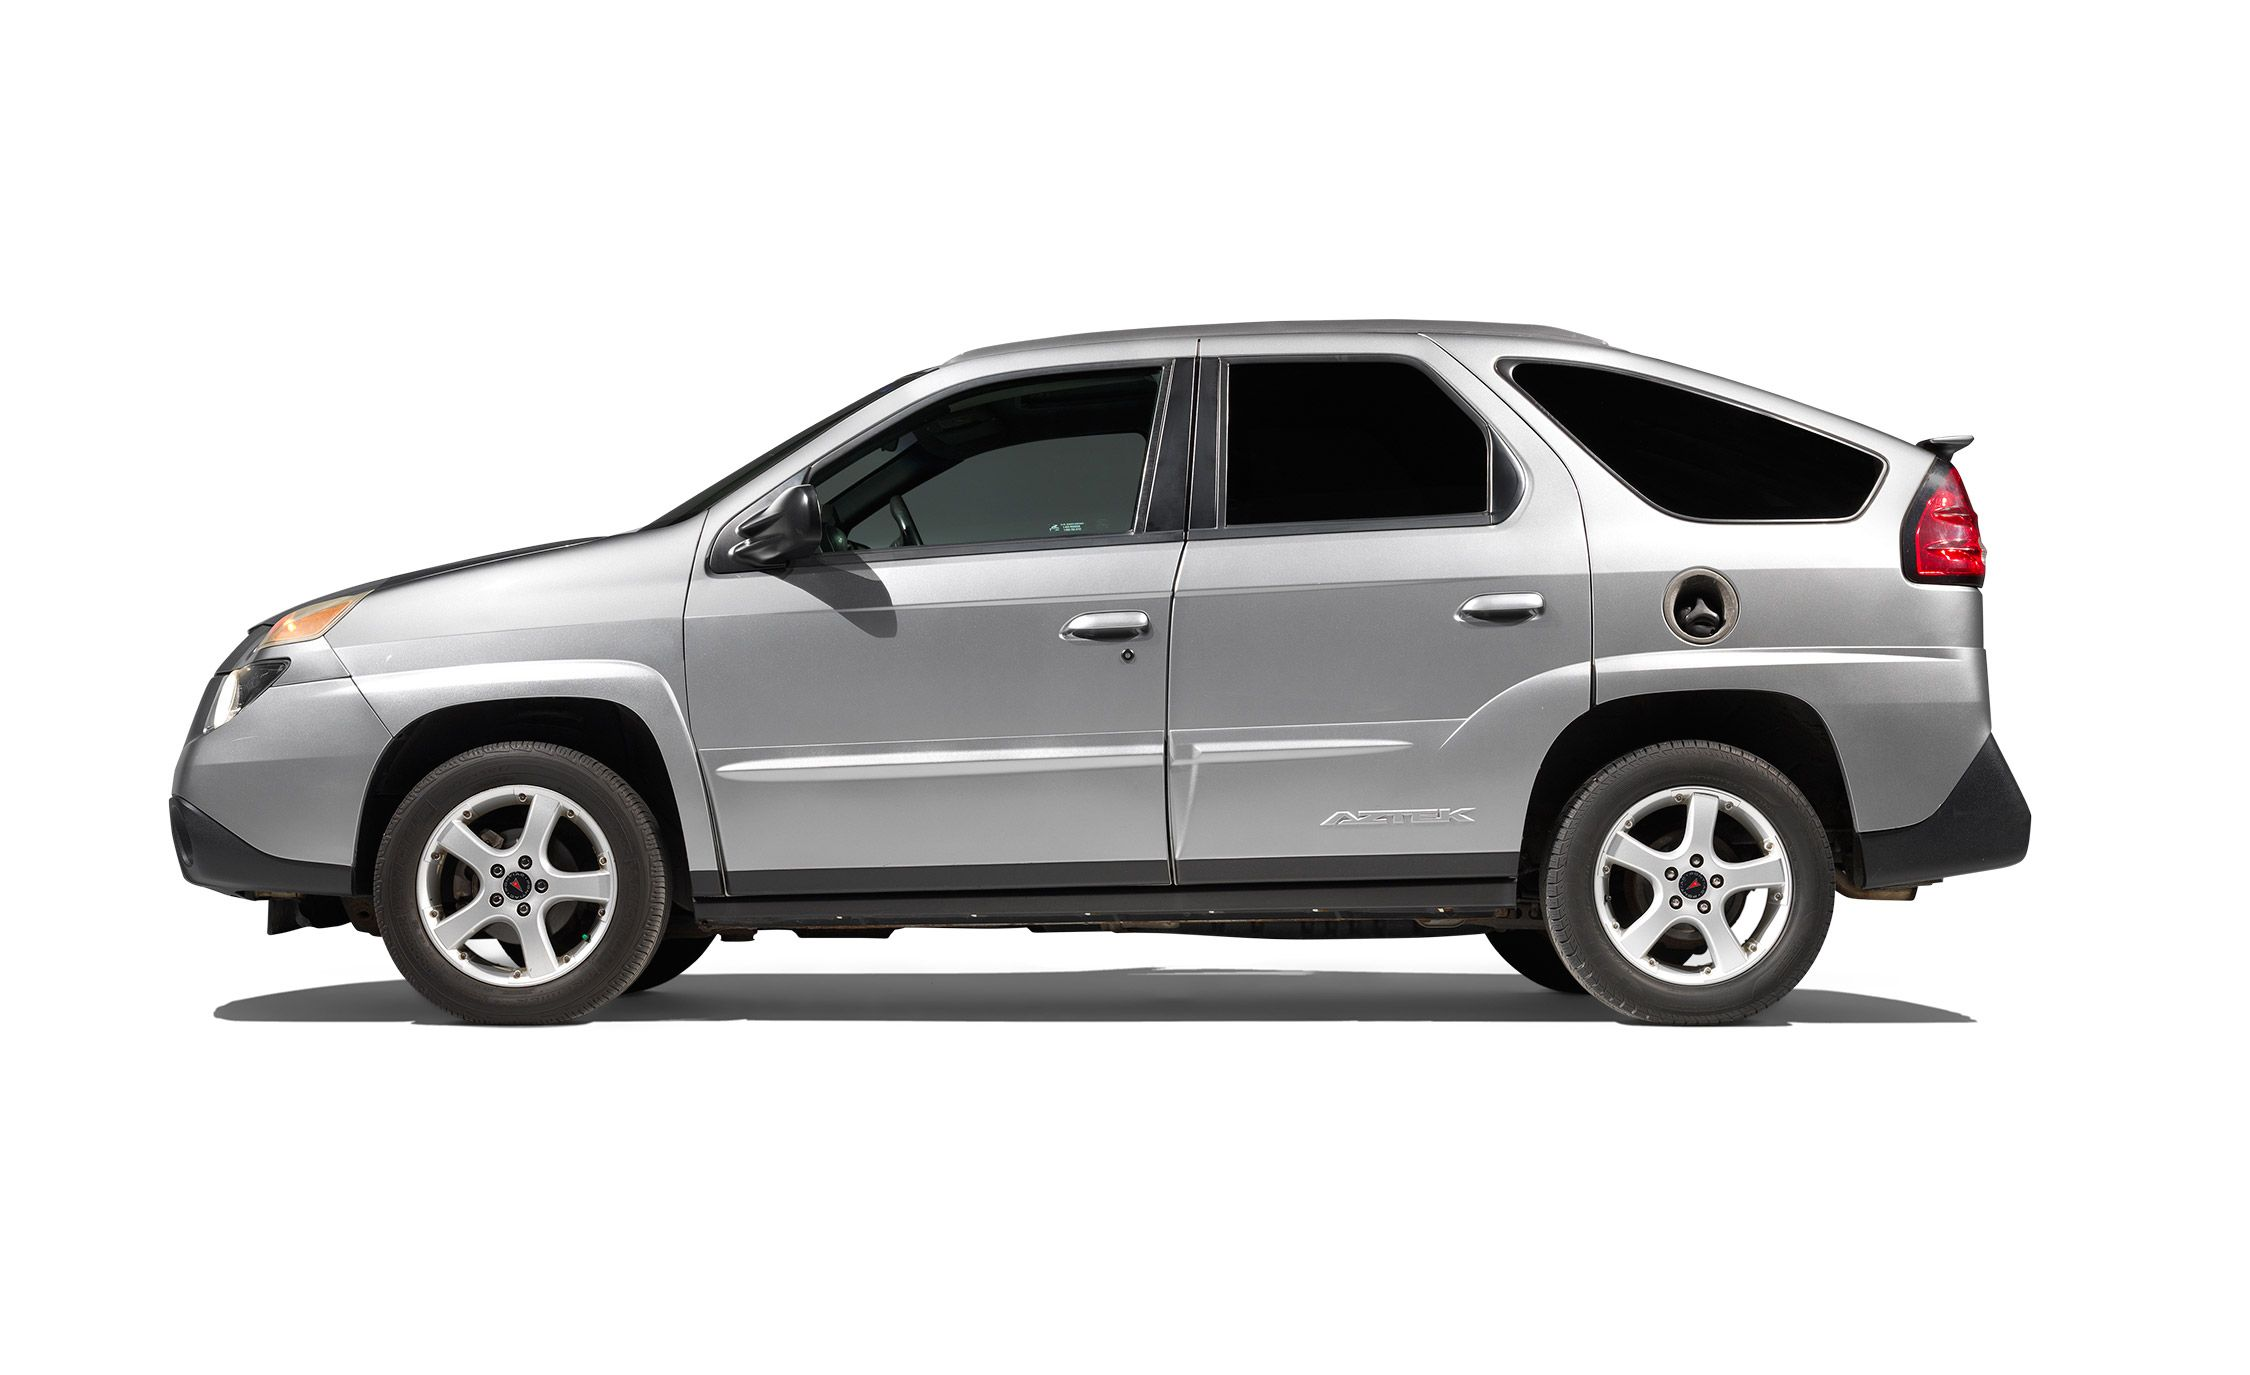 Pontiac Aztek The Story Of A Vehicle Best Forgotten Feature Car And Driver